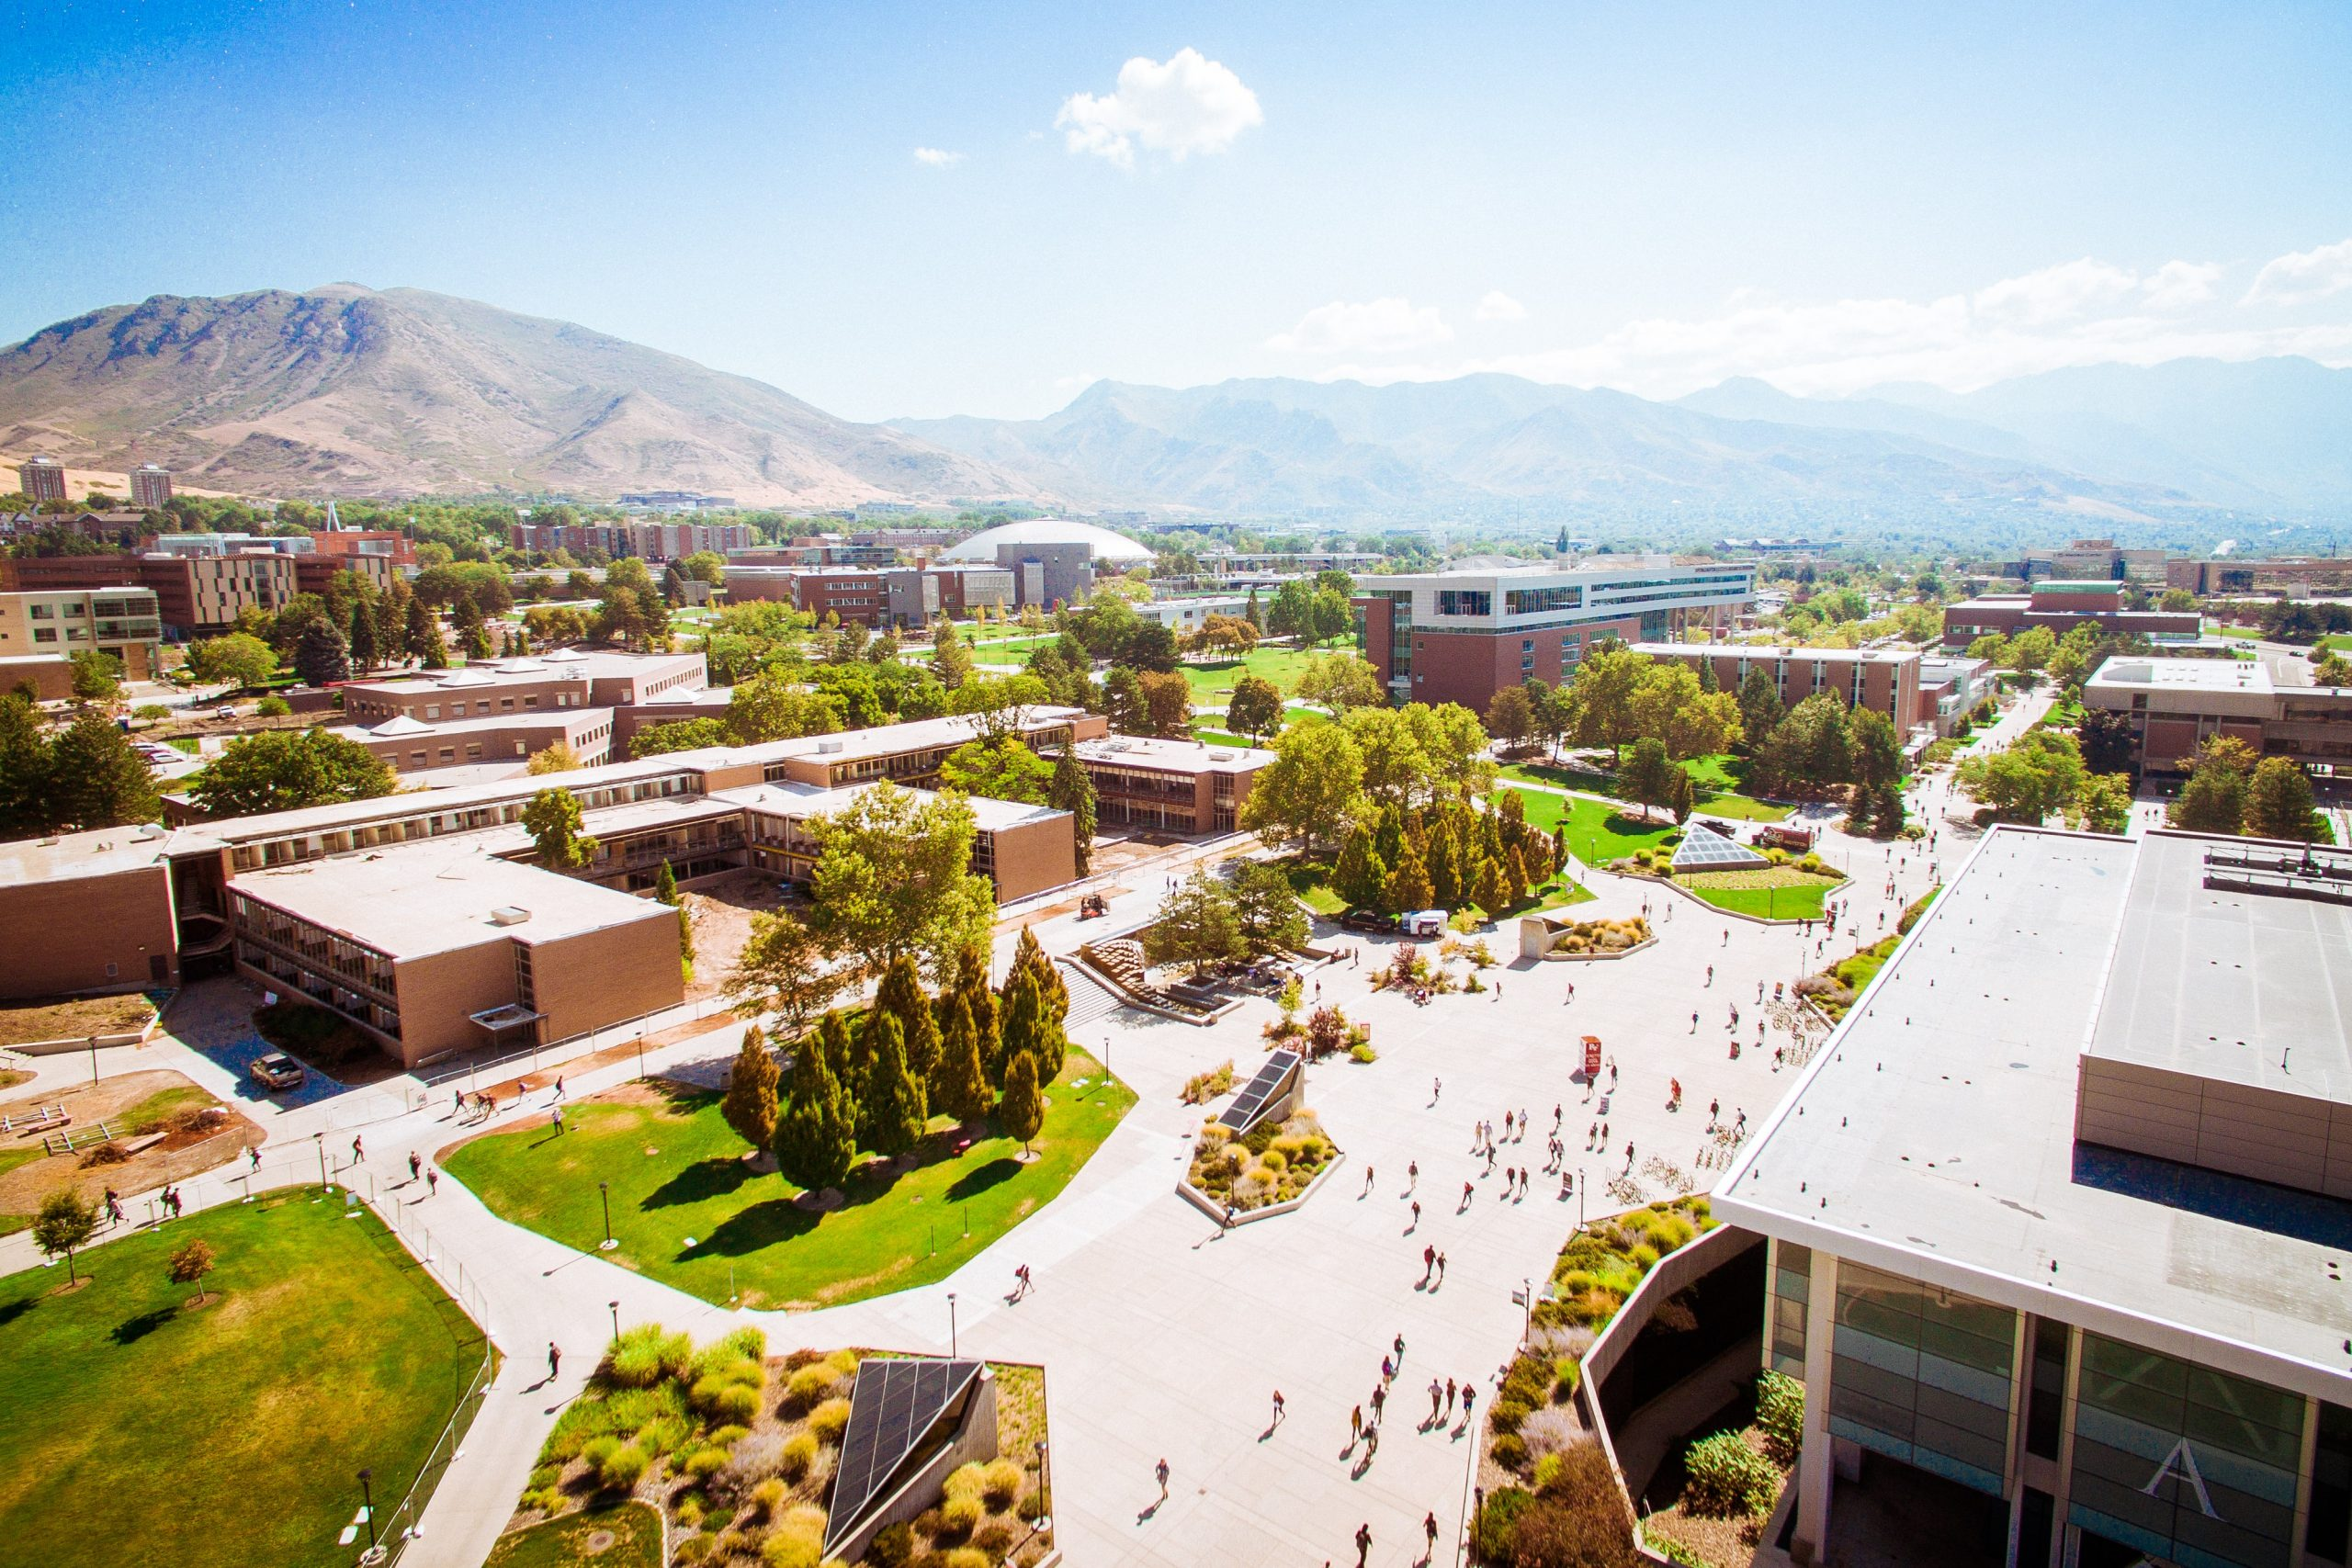 How to get the most out of a campus visit